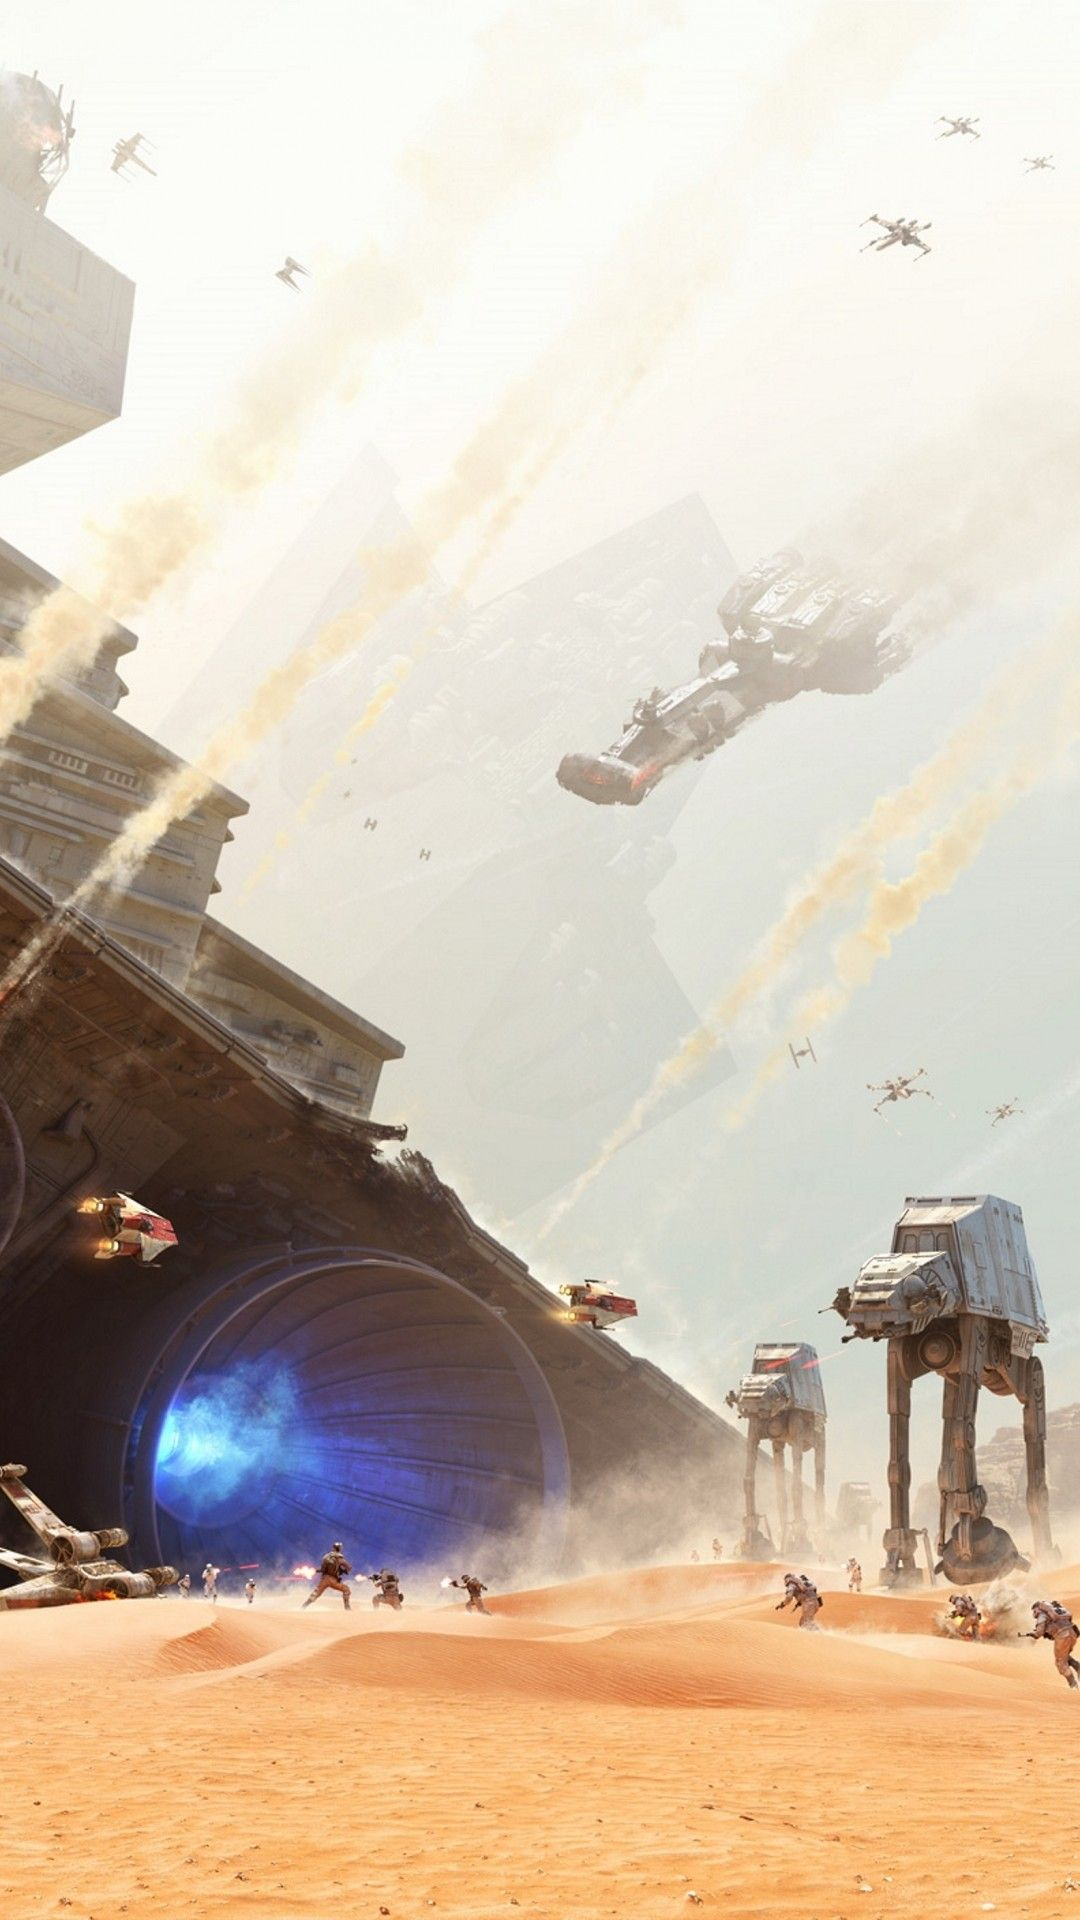 115 Star Wars Space Battle Android Iphone Desktop Hd